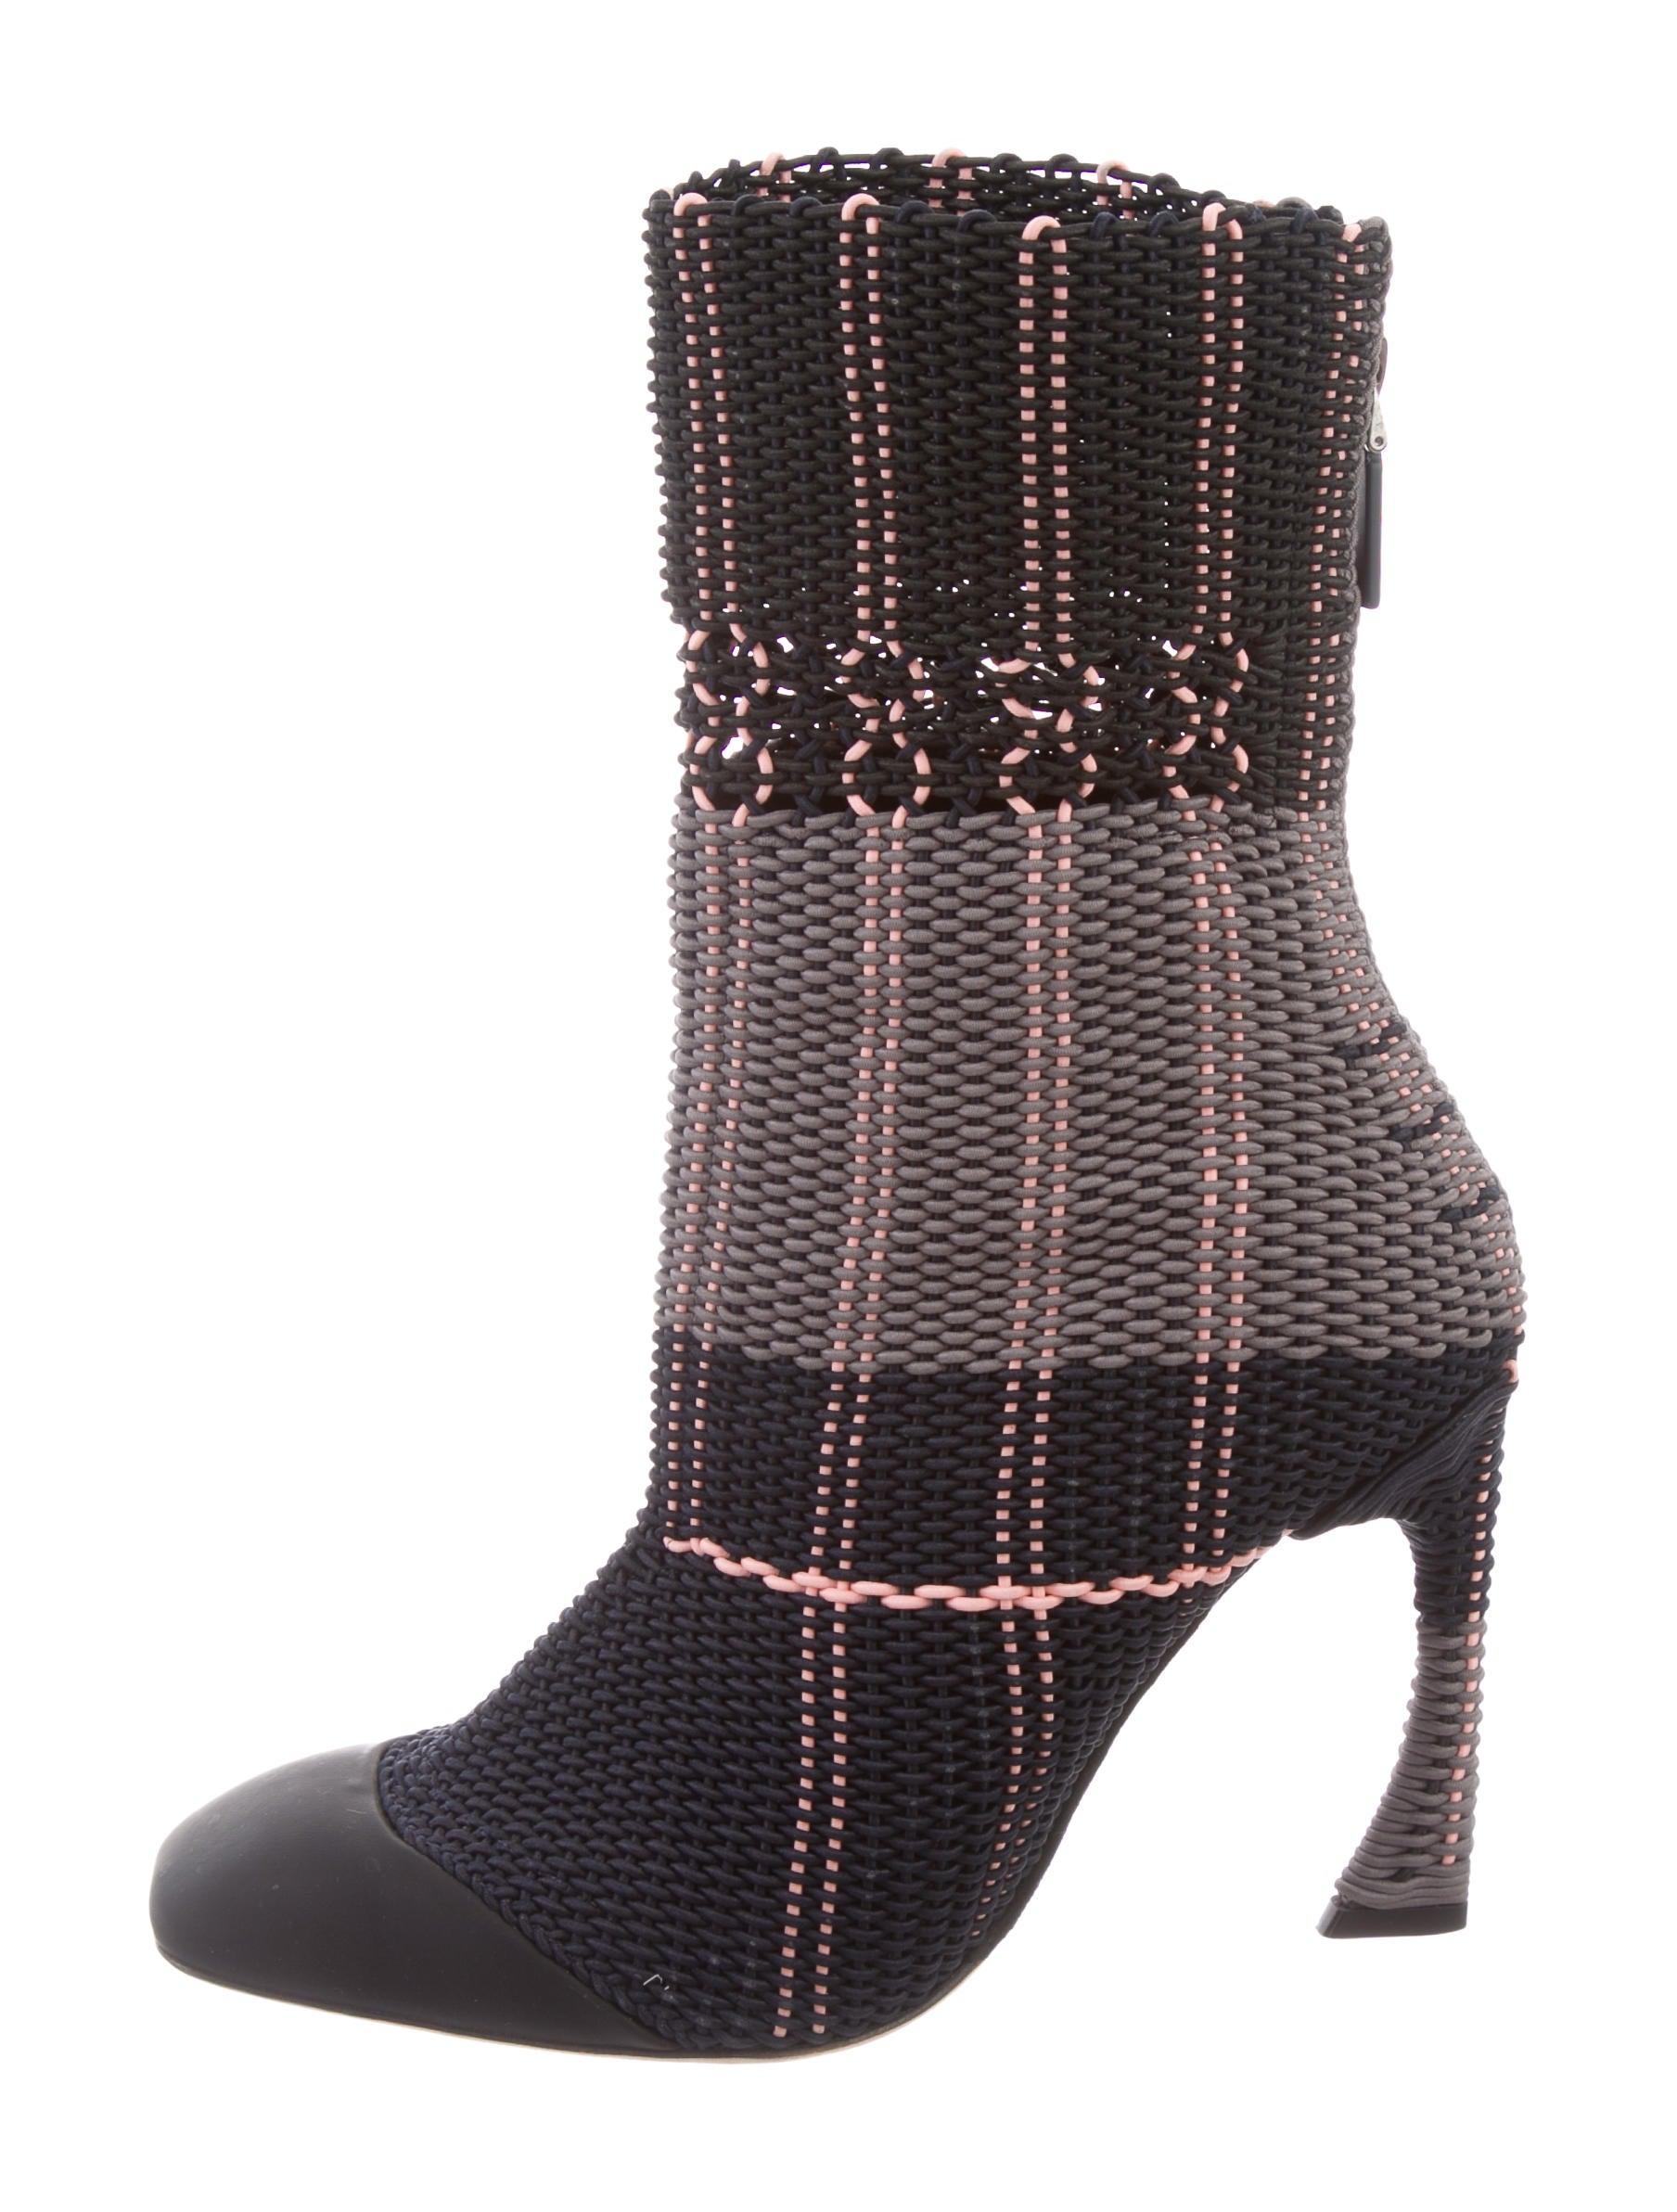 discount online clearance pick a best Christian Dior Songe Ankle Boots cheap supply ozFyTkwuMc